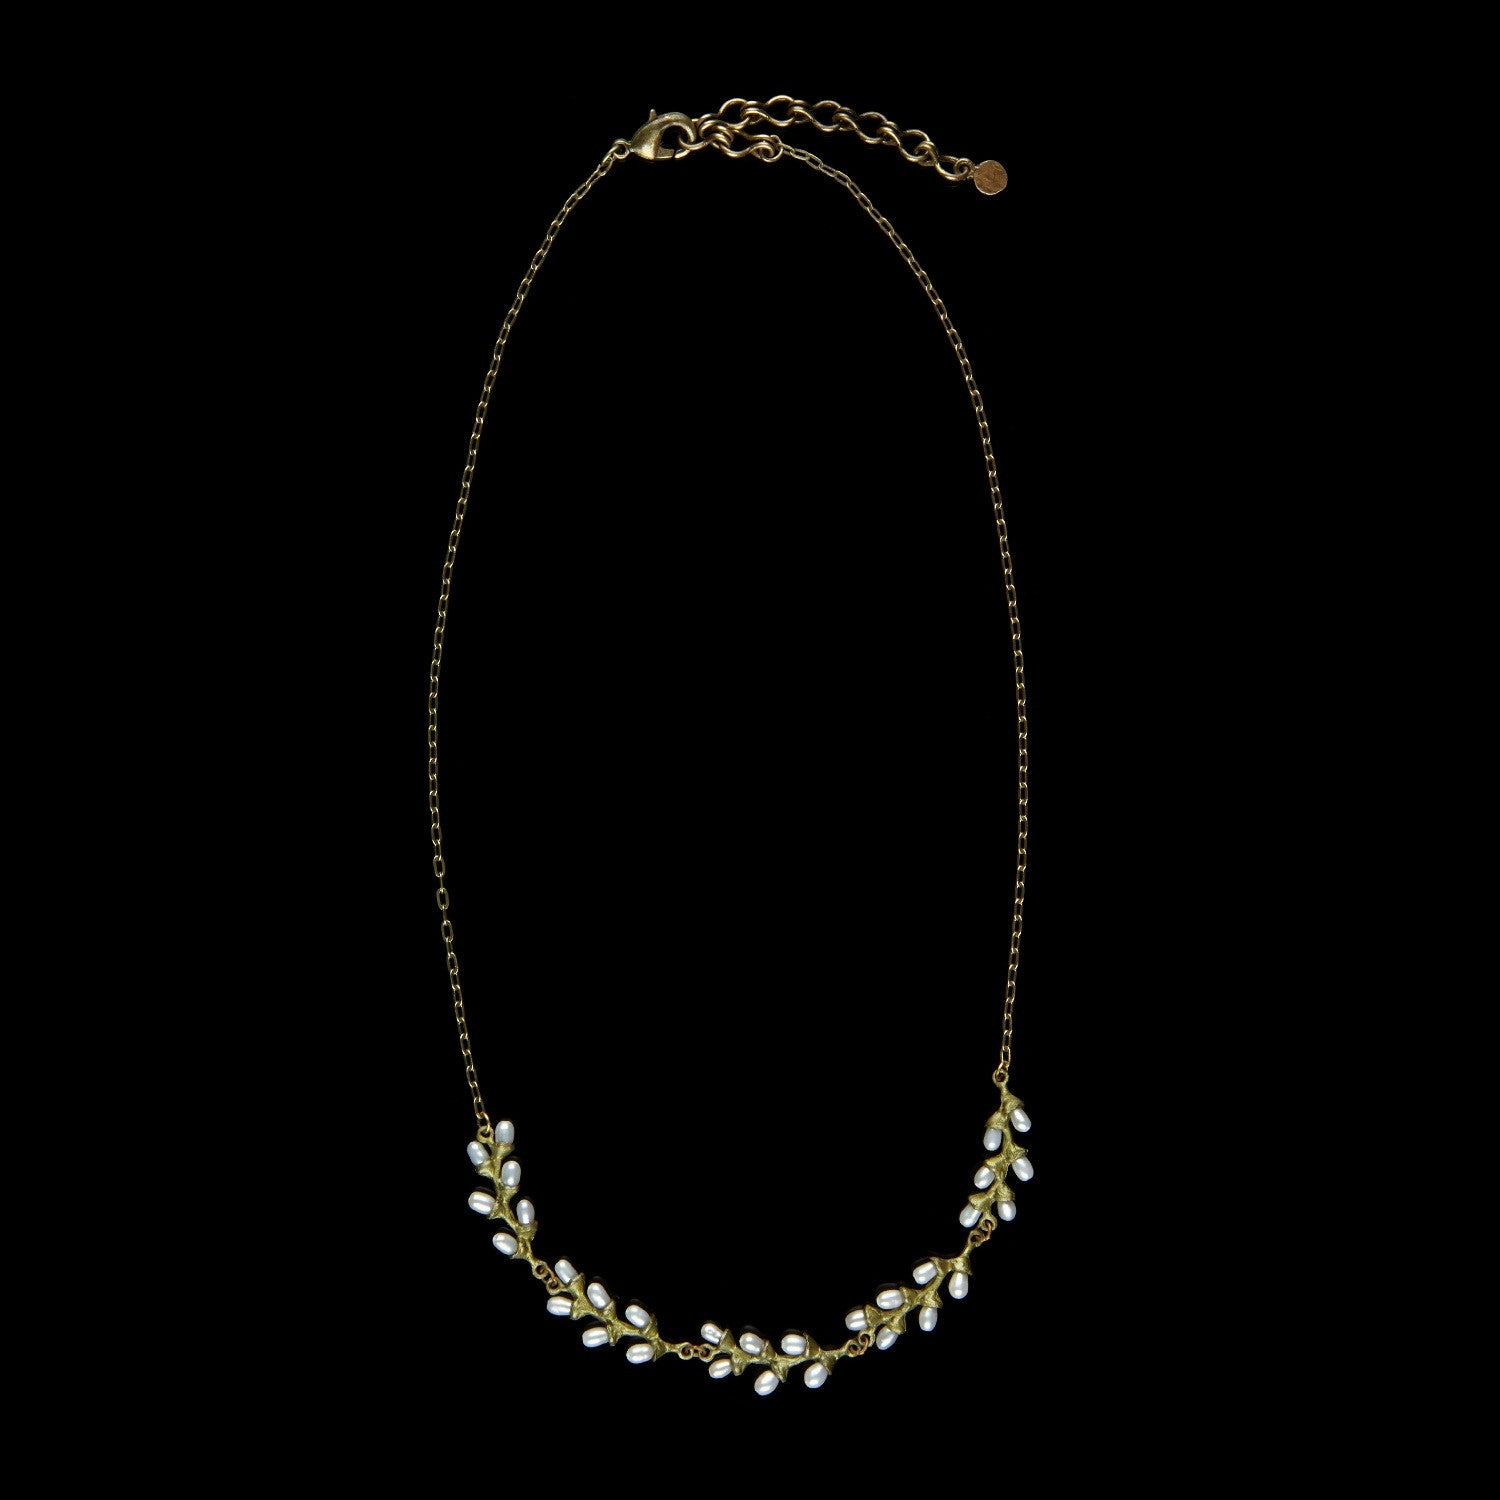 Rice Necklace - Chain